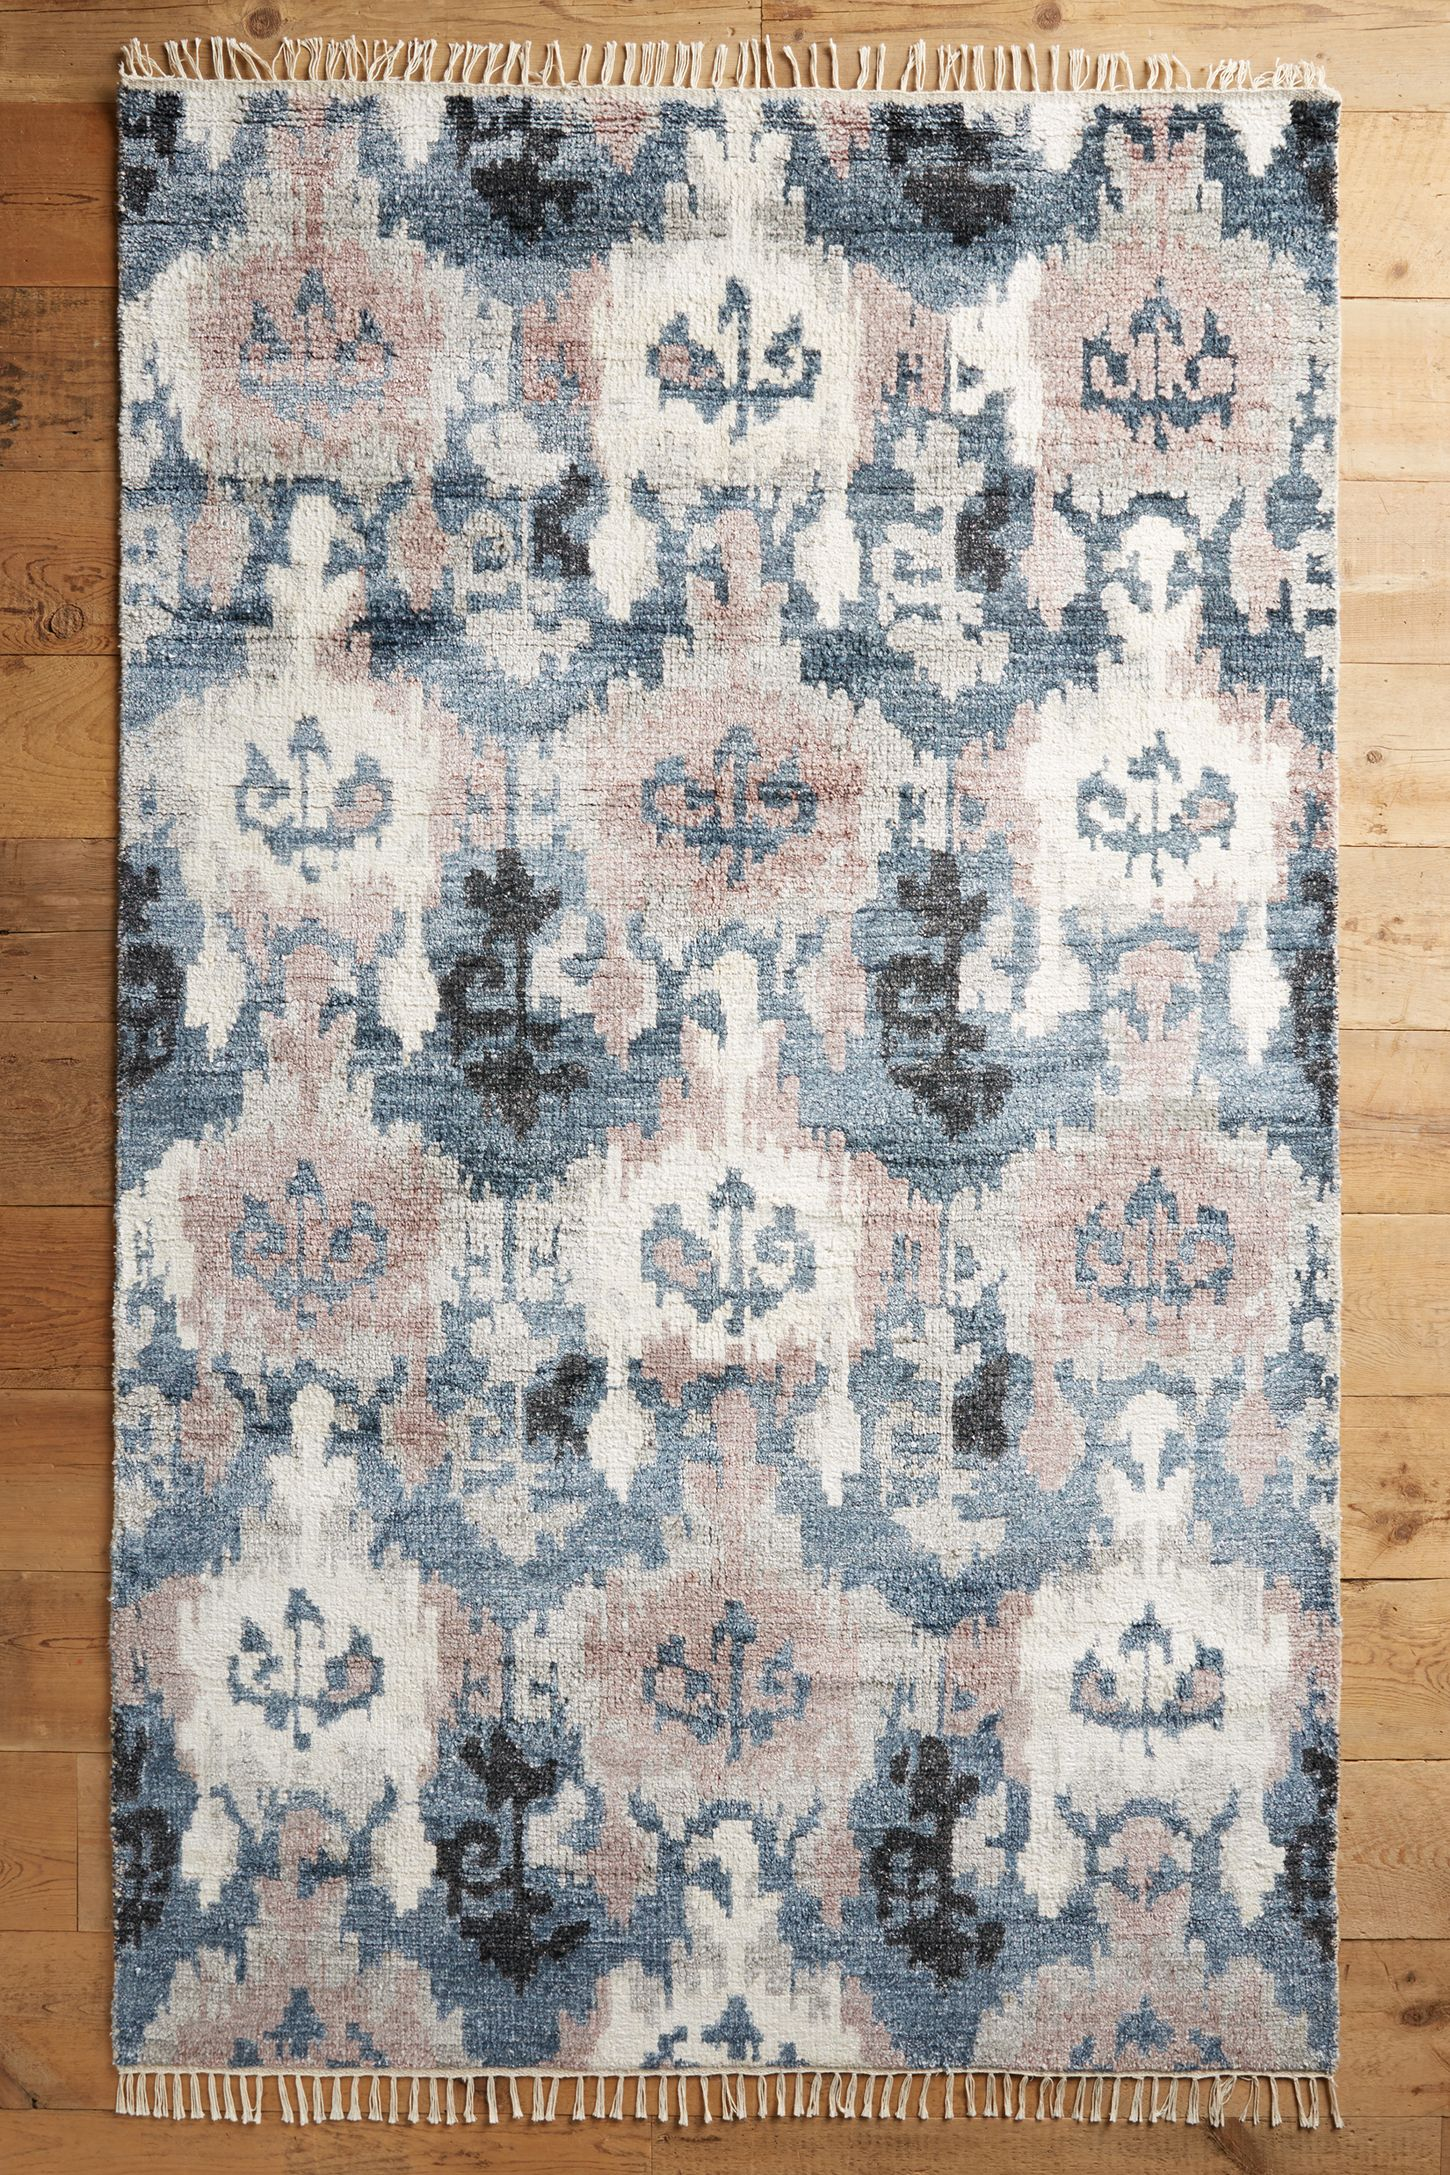 anthropology rugs - rugs ideas